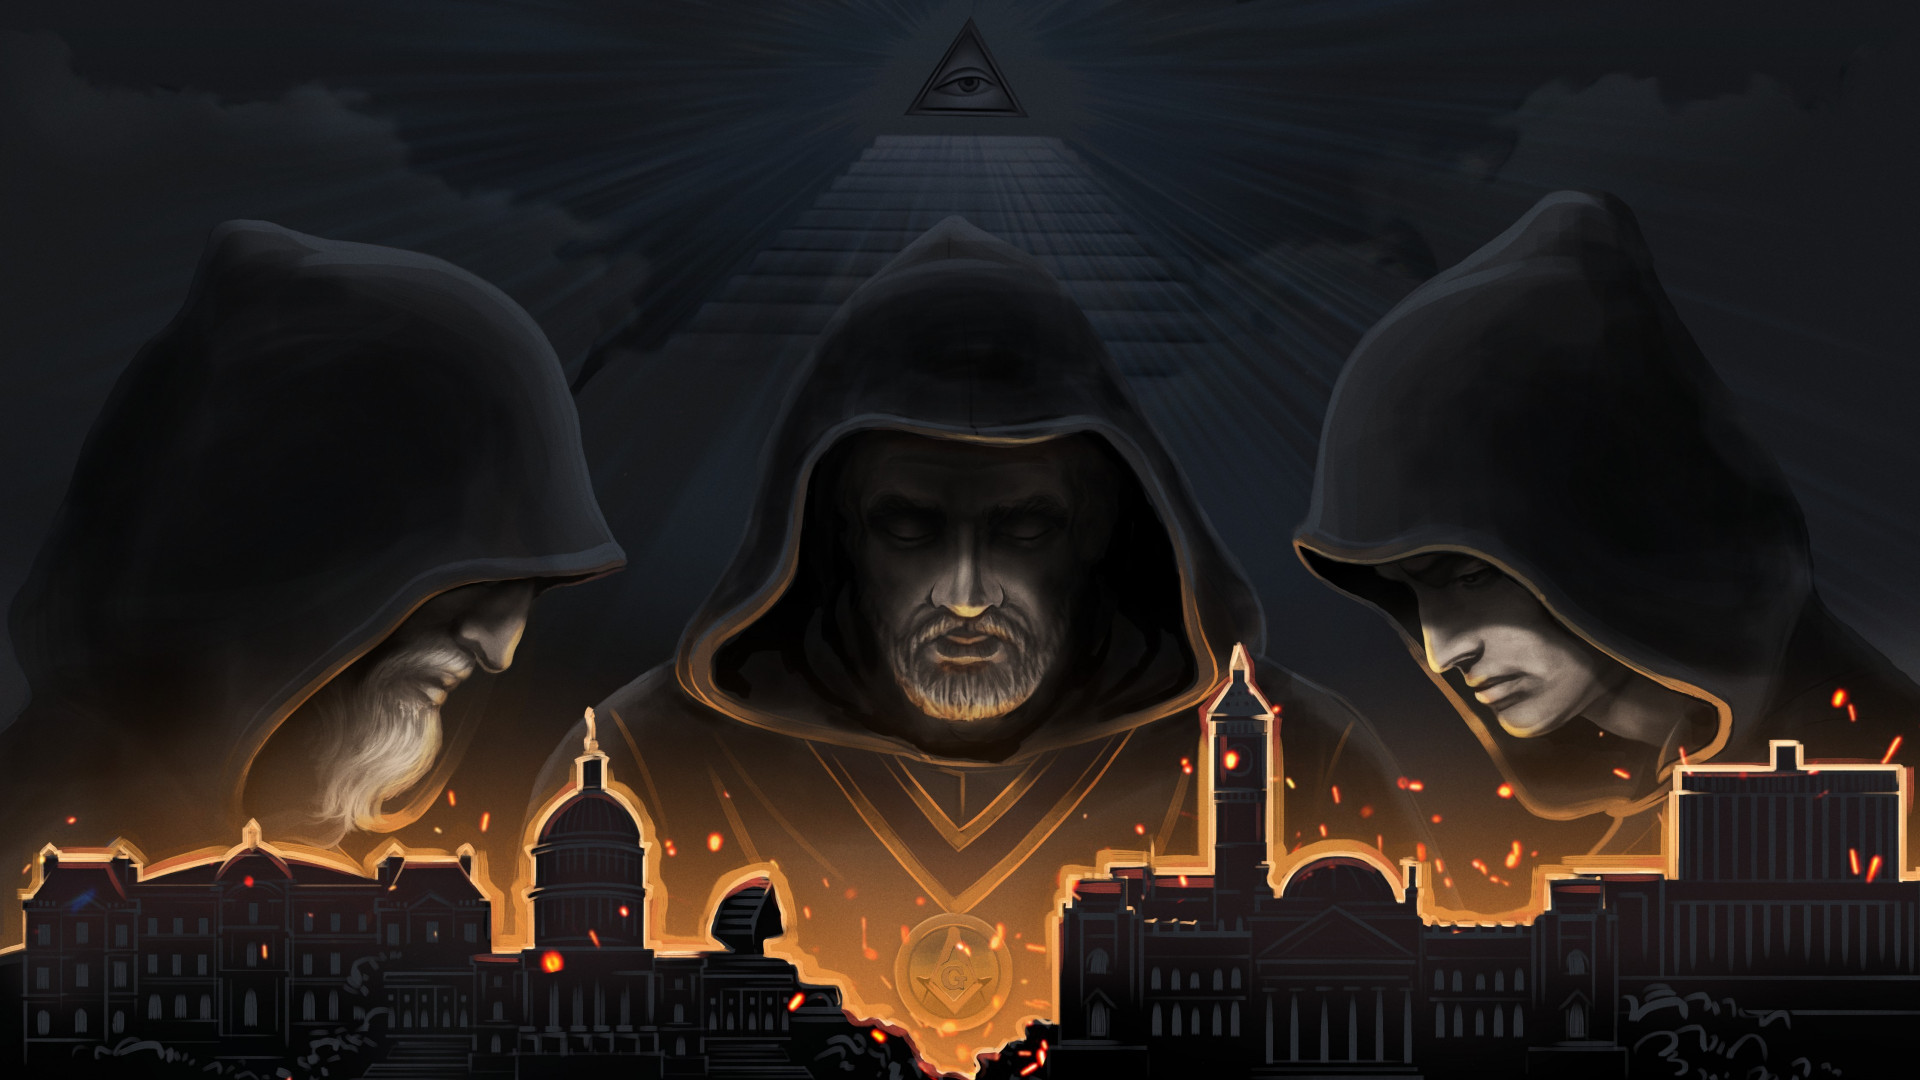 Secret Government wallpaper 1920x1080